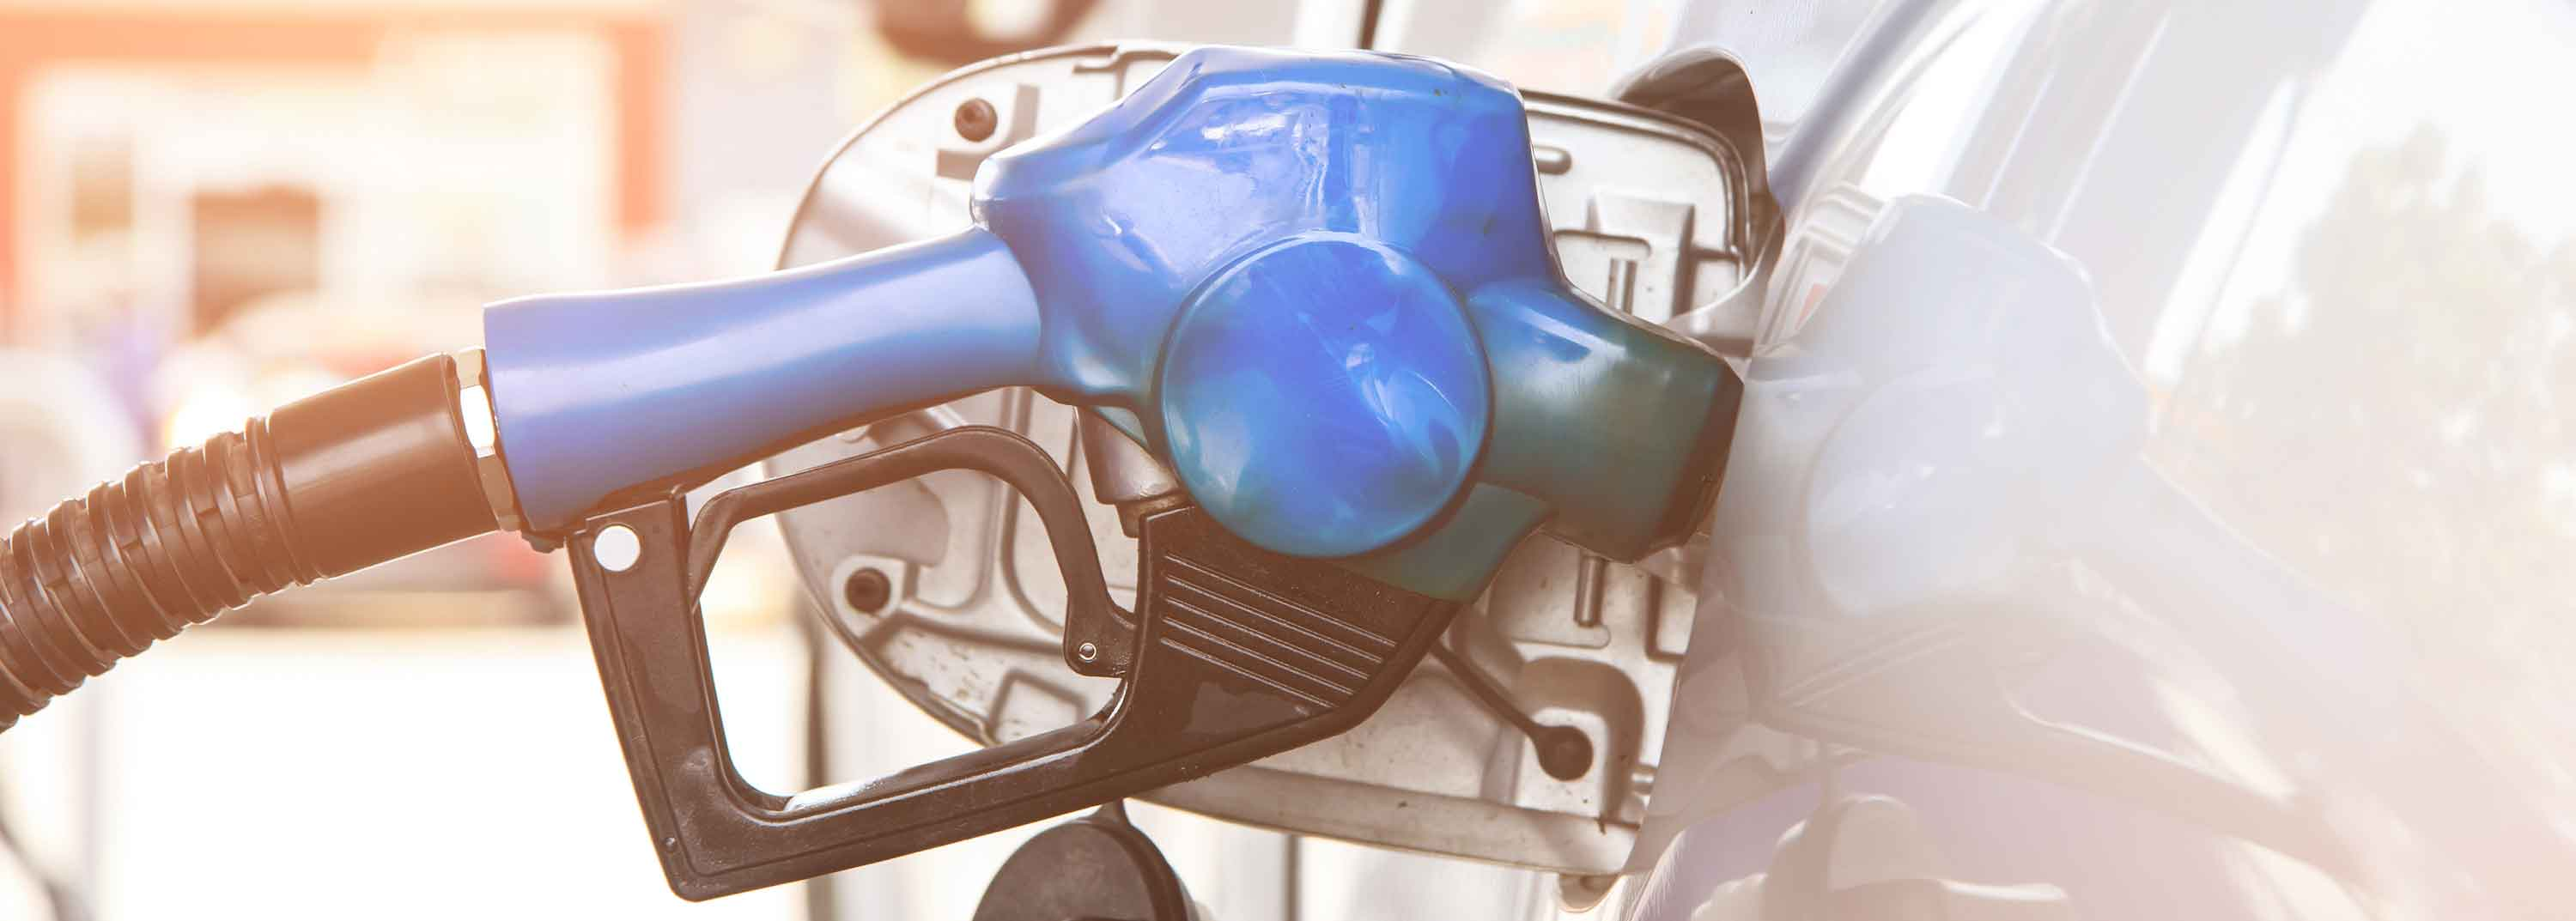 How to stay ahead of fuel price increases